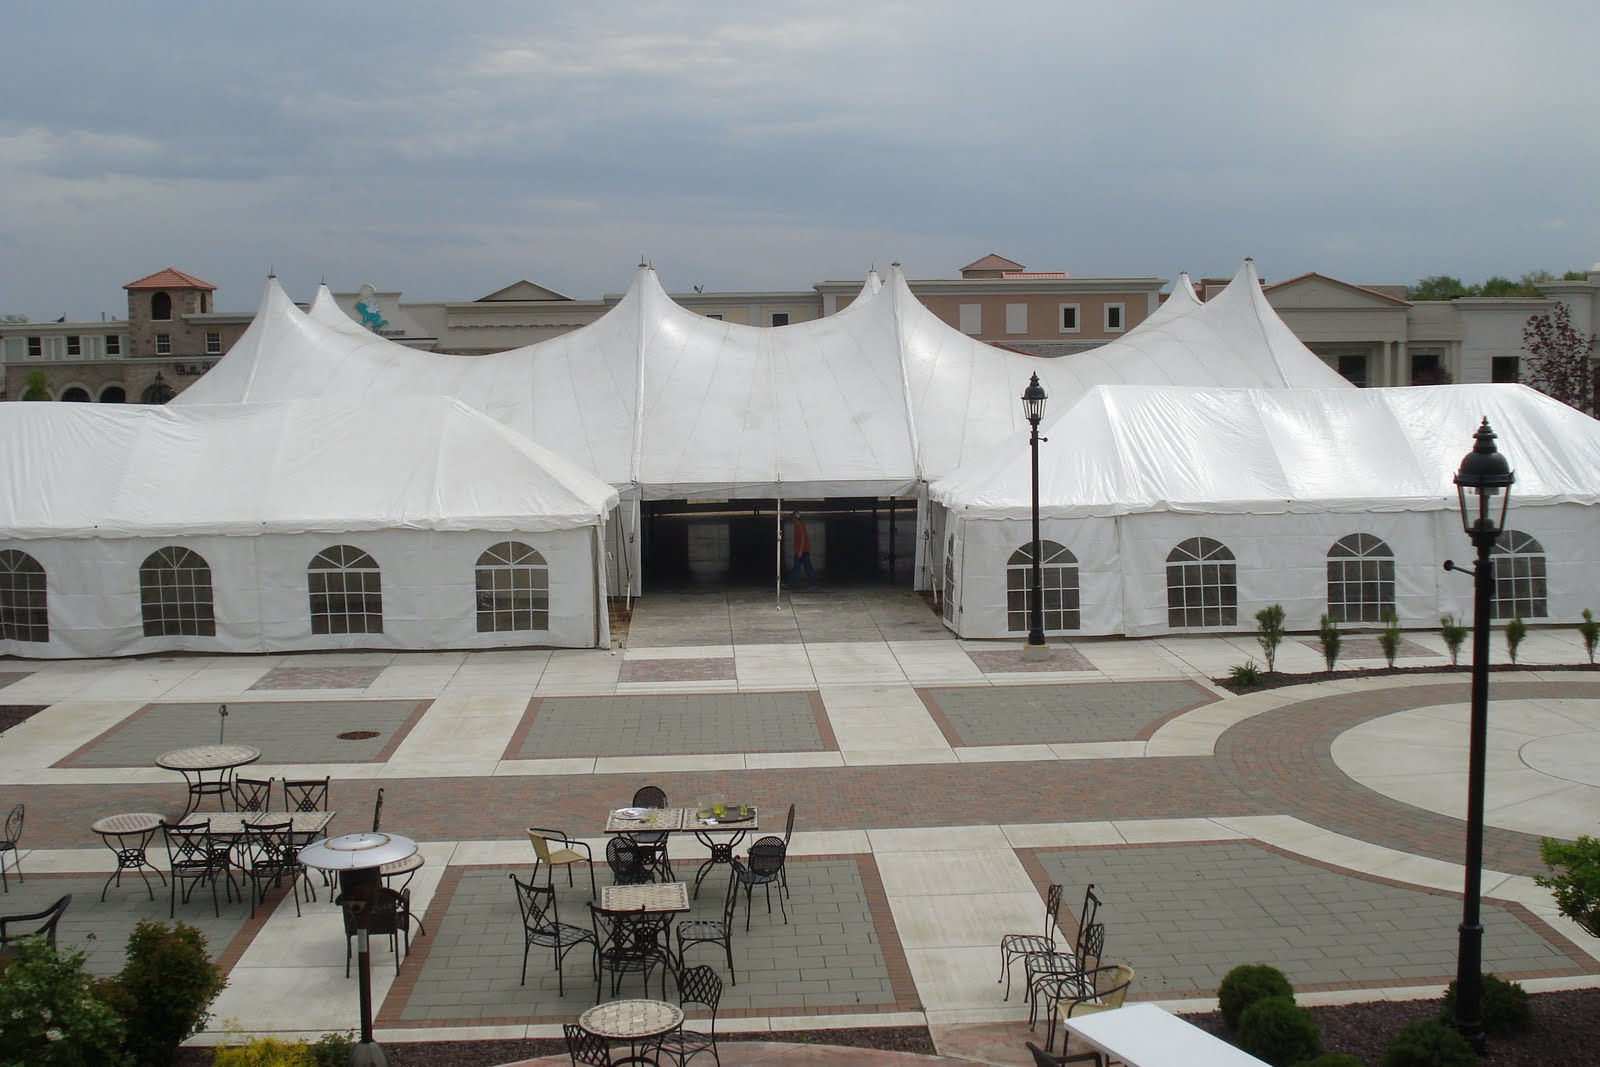 EuroTent, Indiana, Used as Concert Venue, 2010